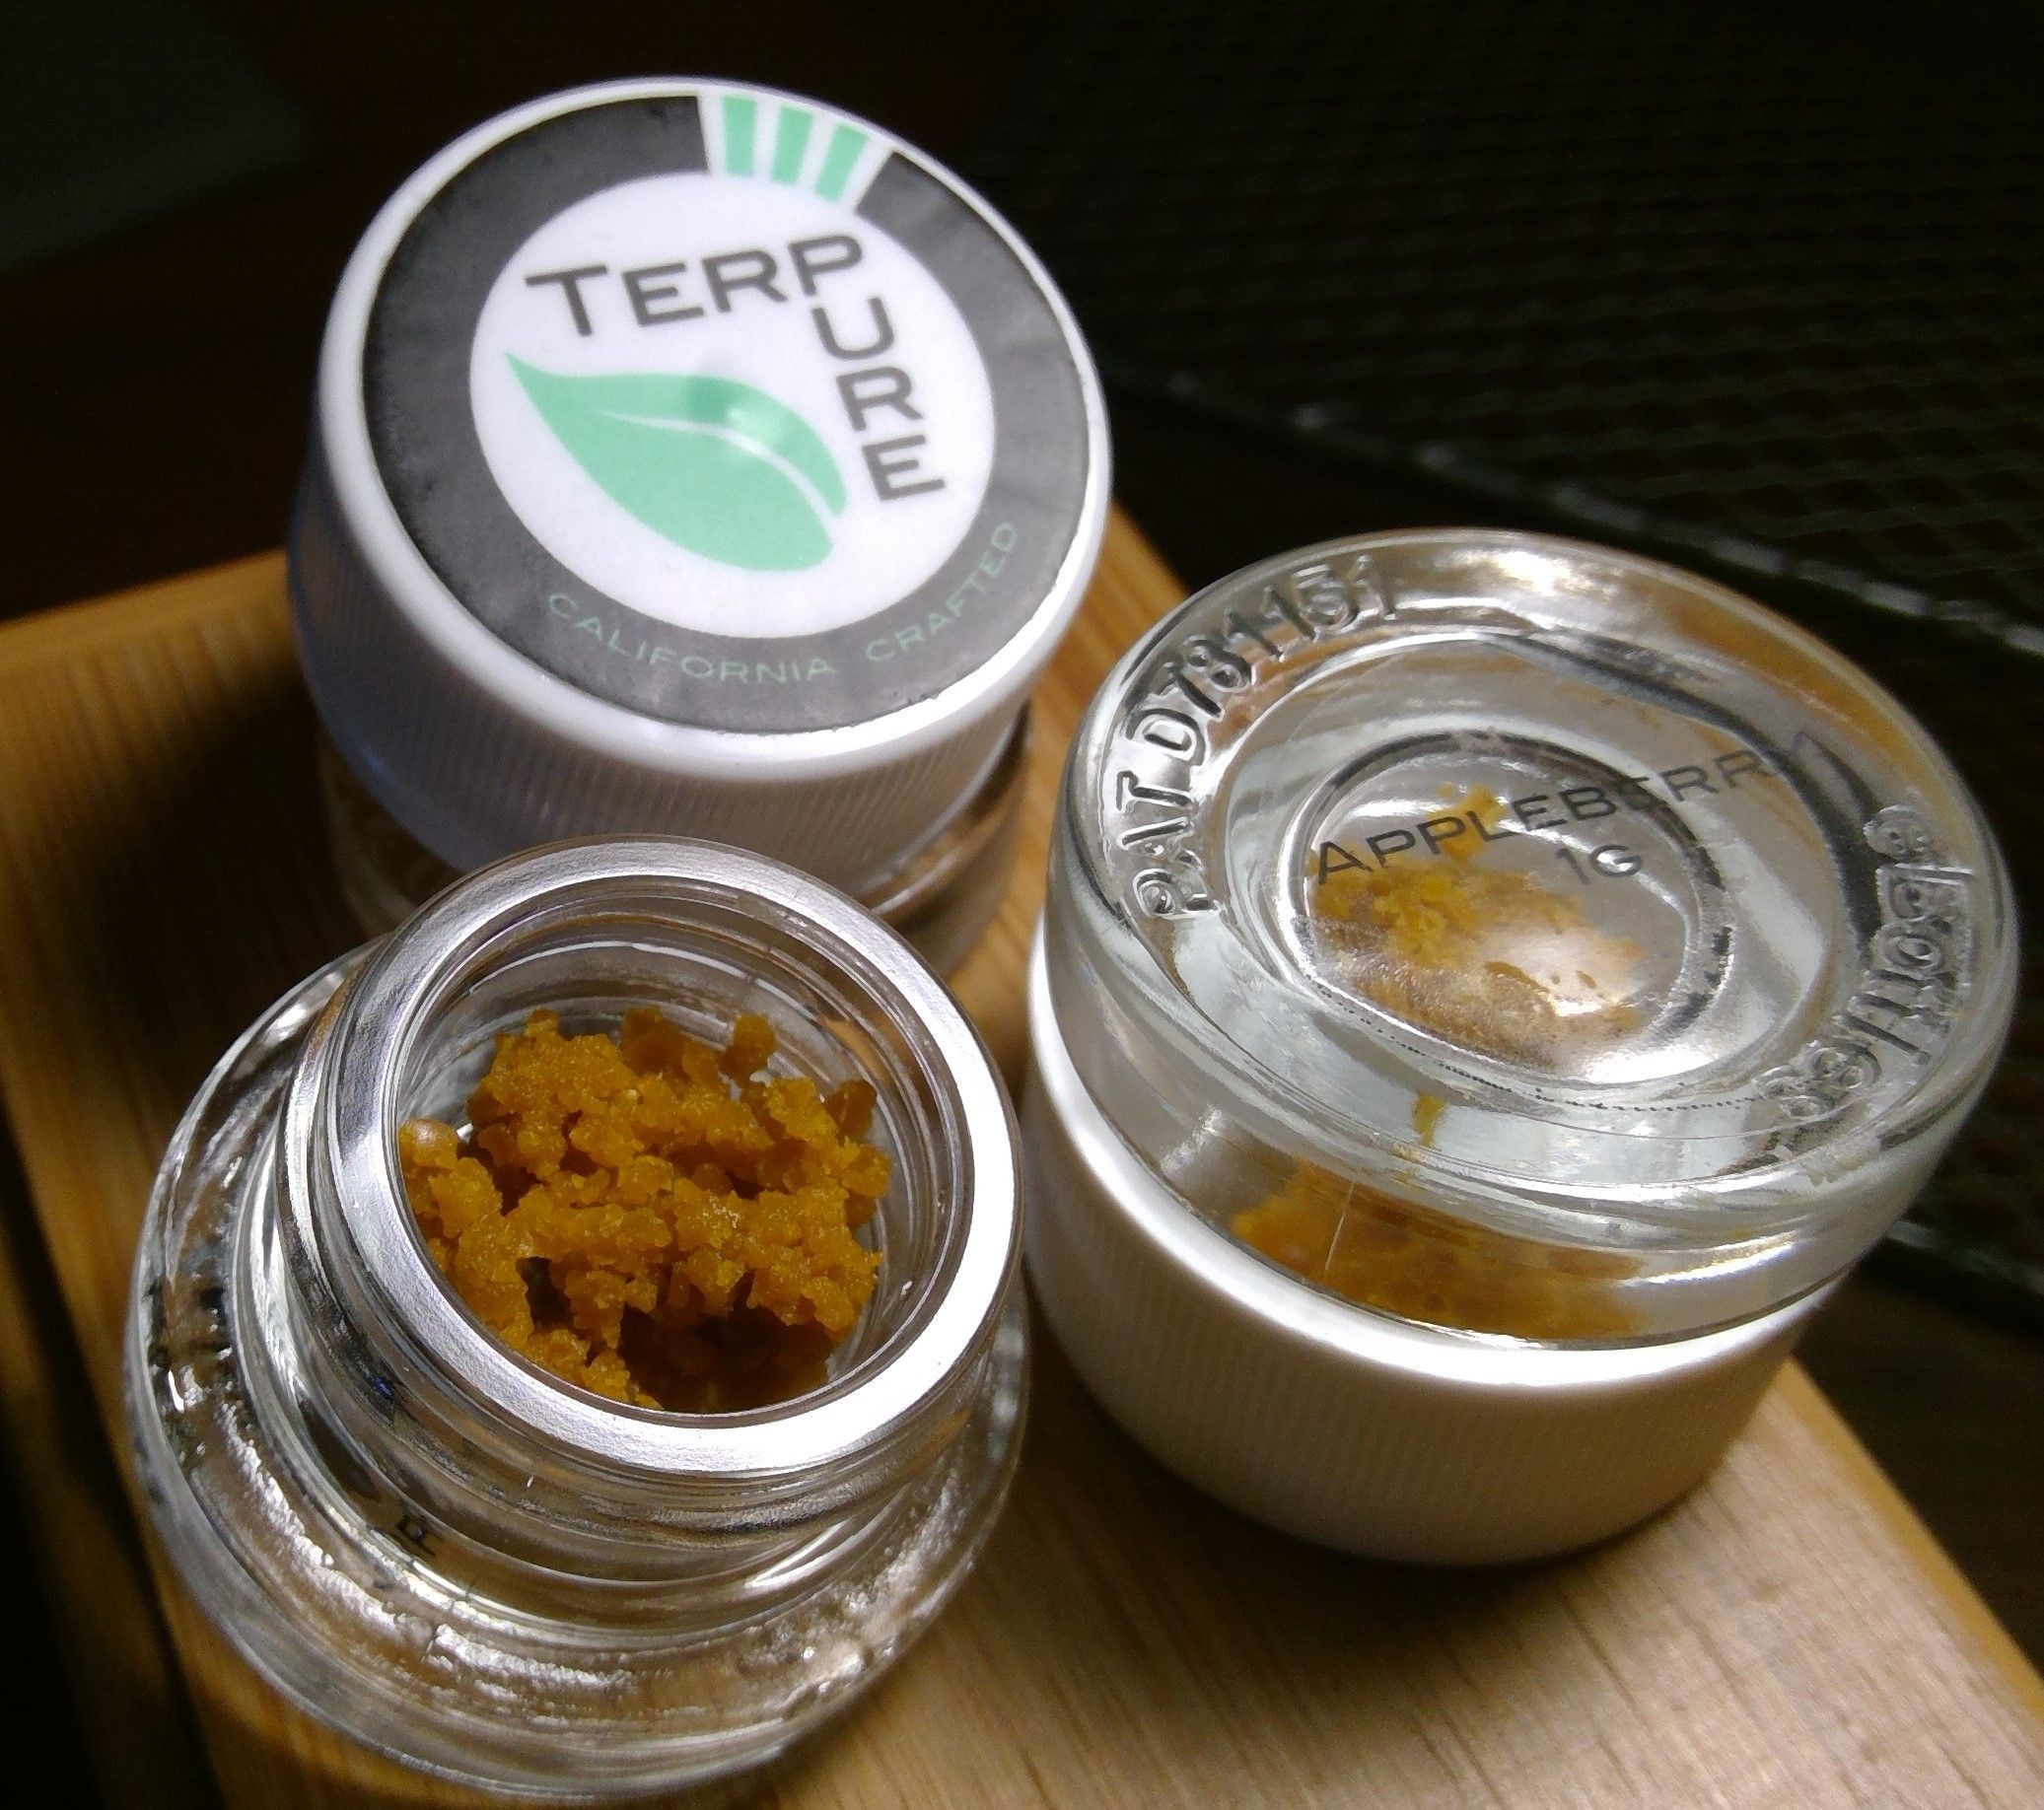 Appleberry PR Crumble 1g. (Indica) by Terpure